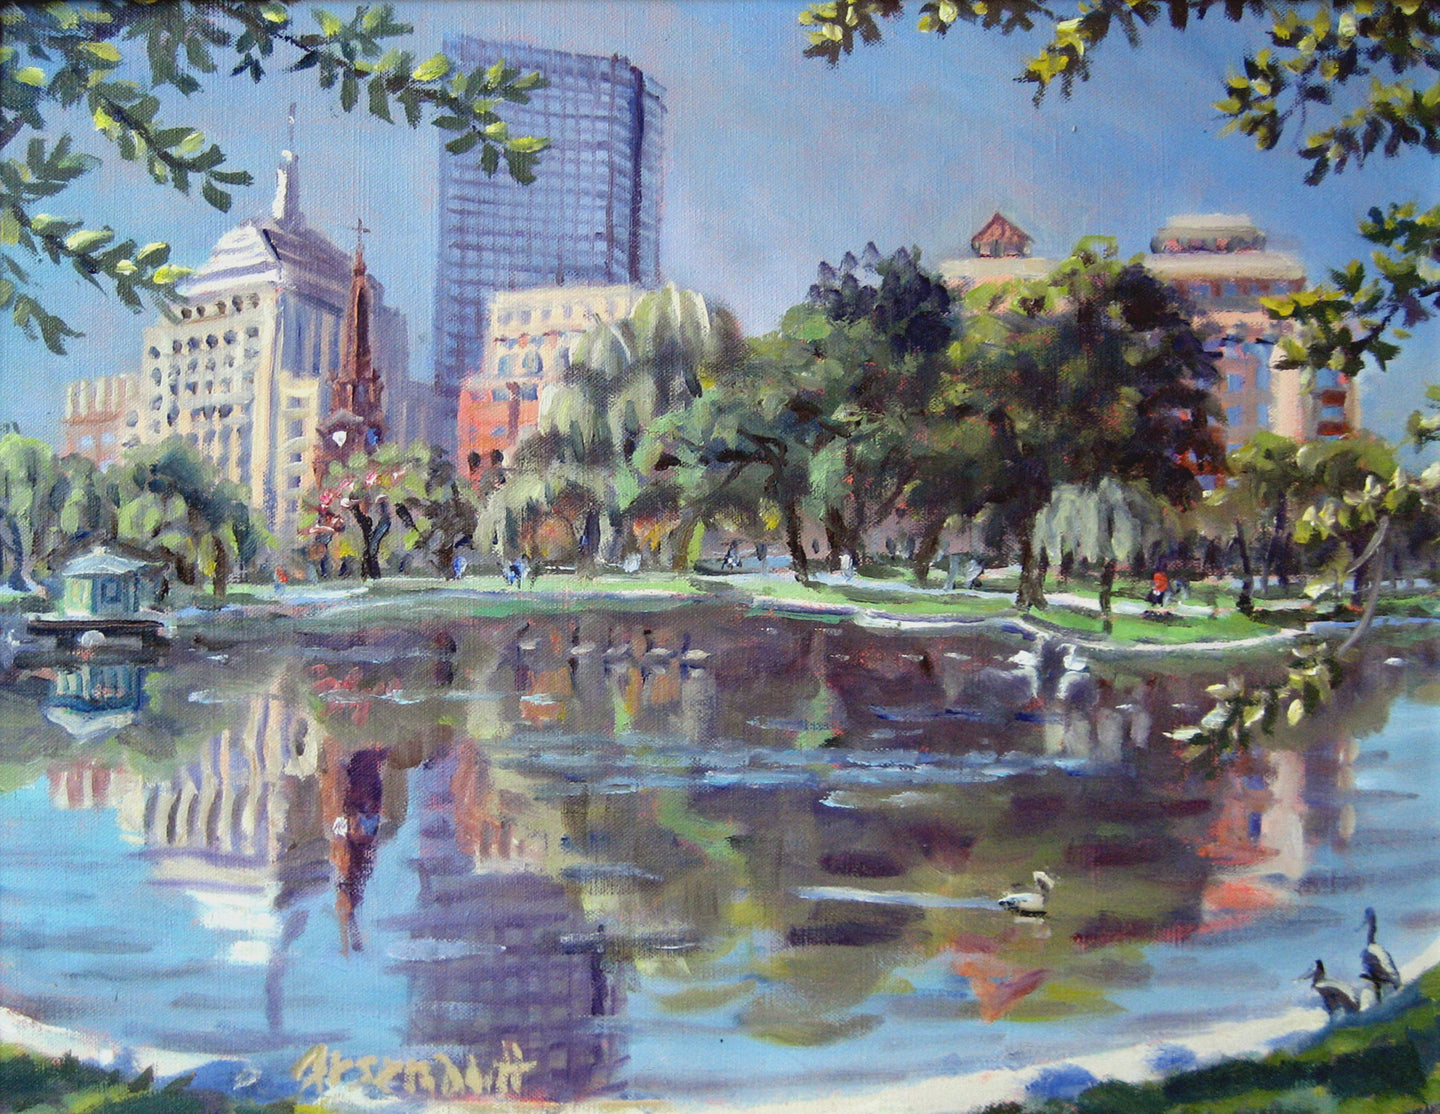 Reflections, Boston Public Garden